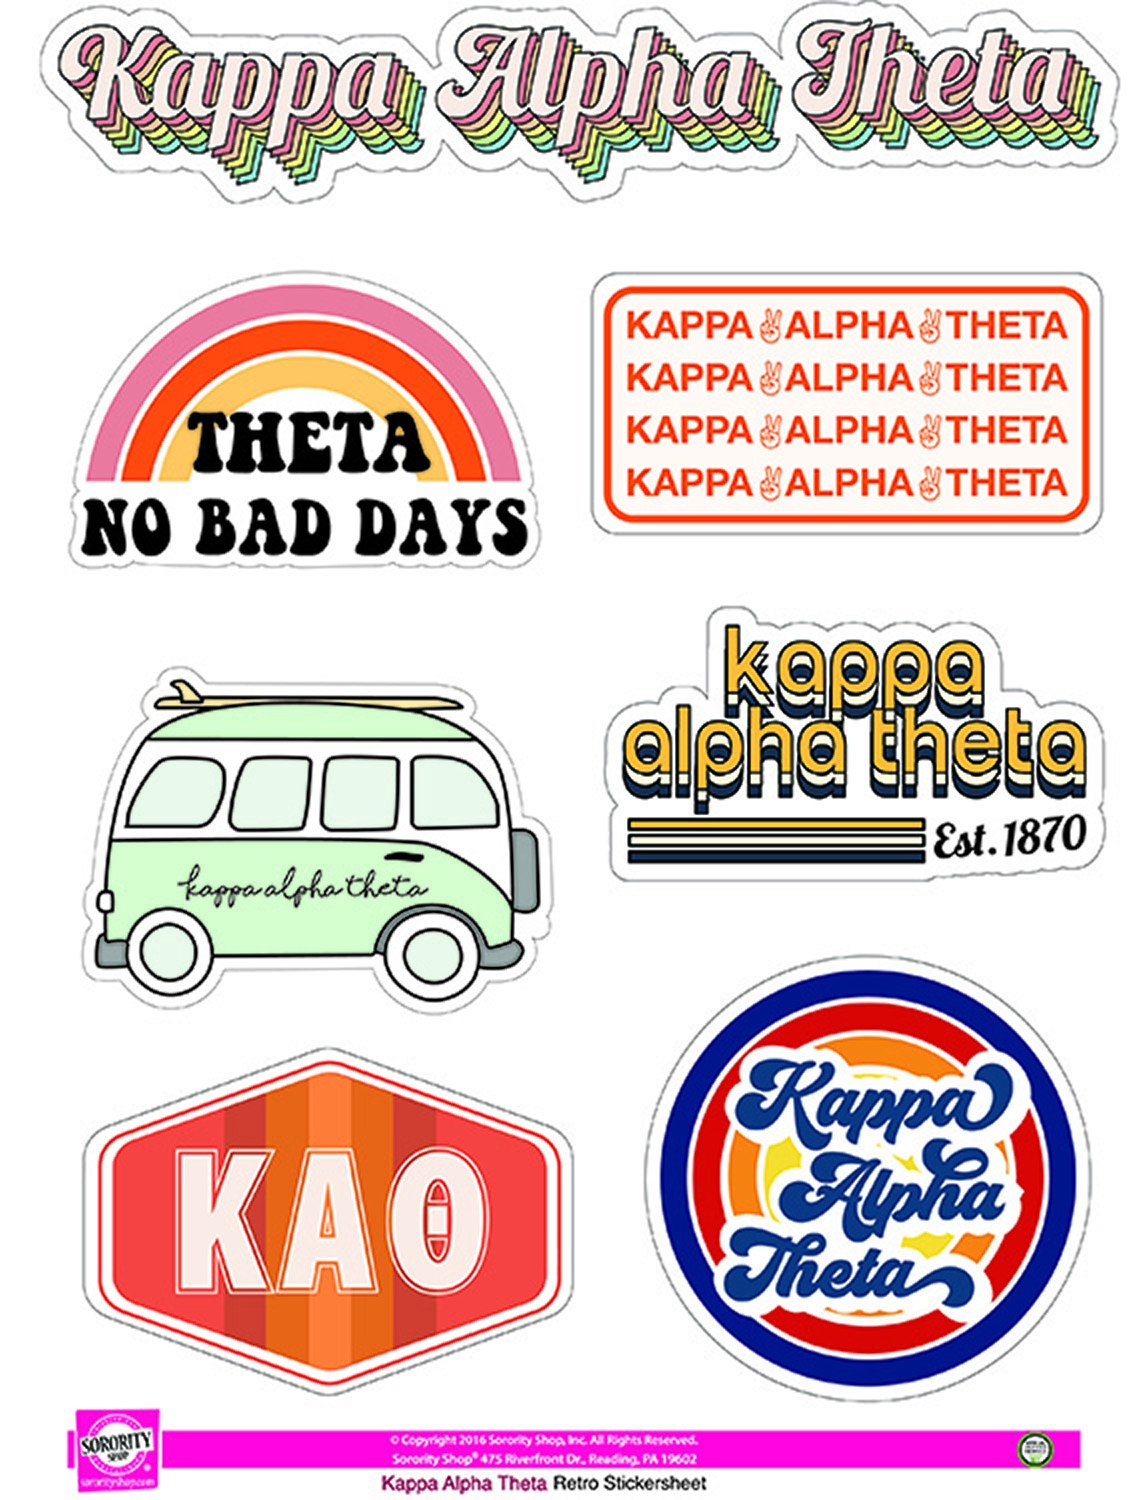 Retro Sticker Sheet - Kappa Alpha Theta